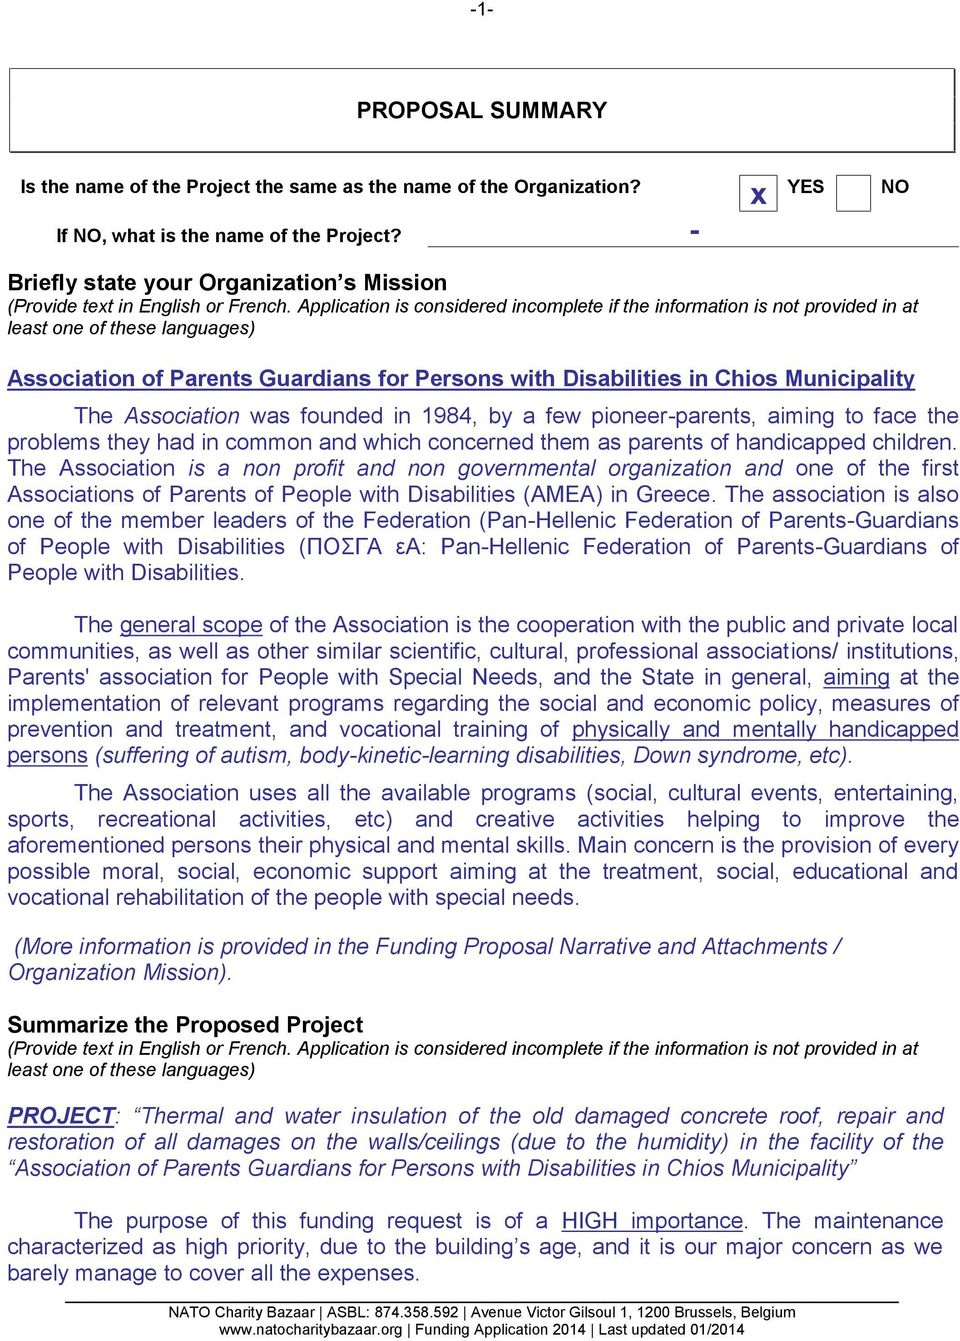 Application is considered incomplete if the information is not provided in at least one of these languages) Association of Parents Guardians for Persons with Disabilities in Chios Municipality The